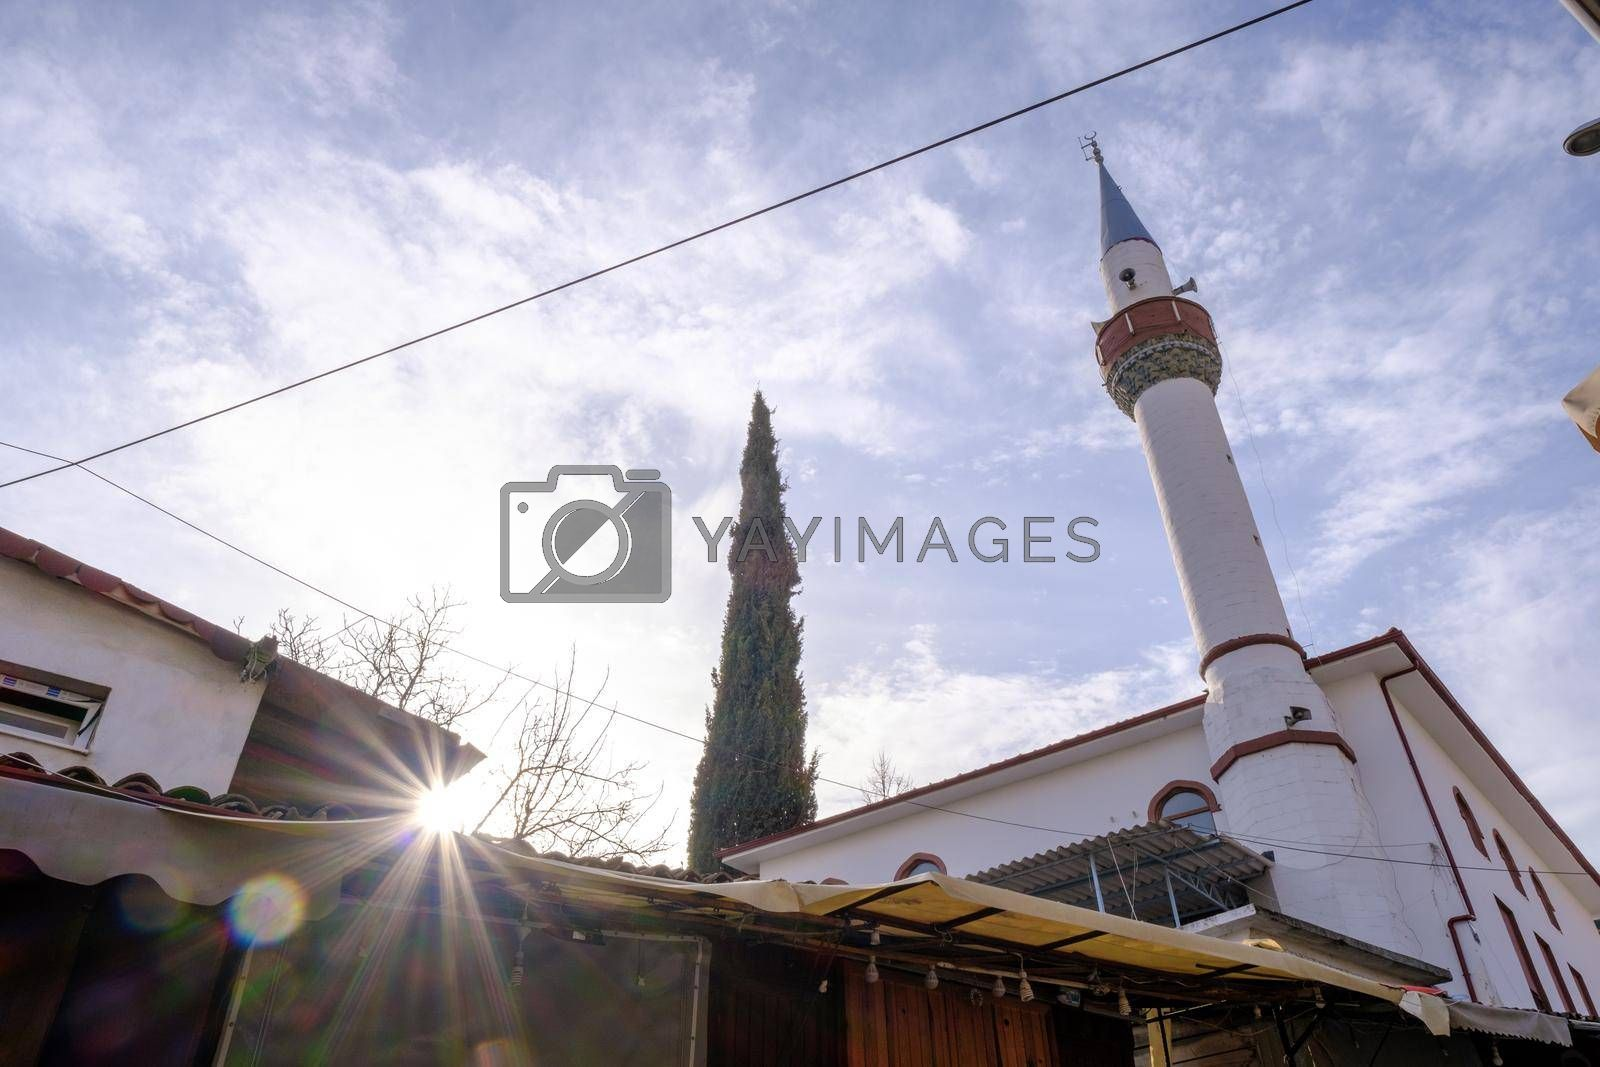 low angle view of Sirince village with a mosque minaret and a tree in a bright air